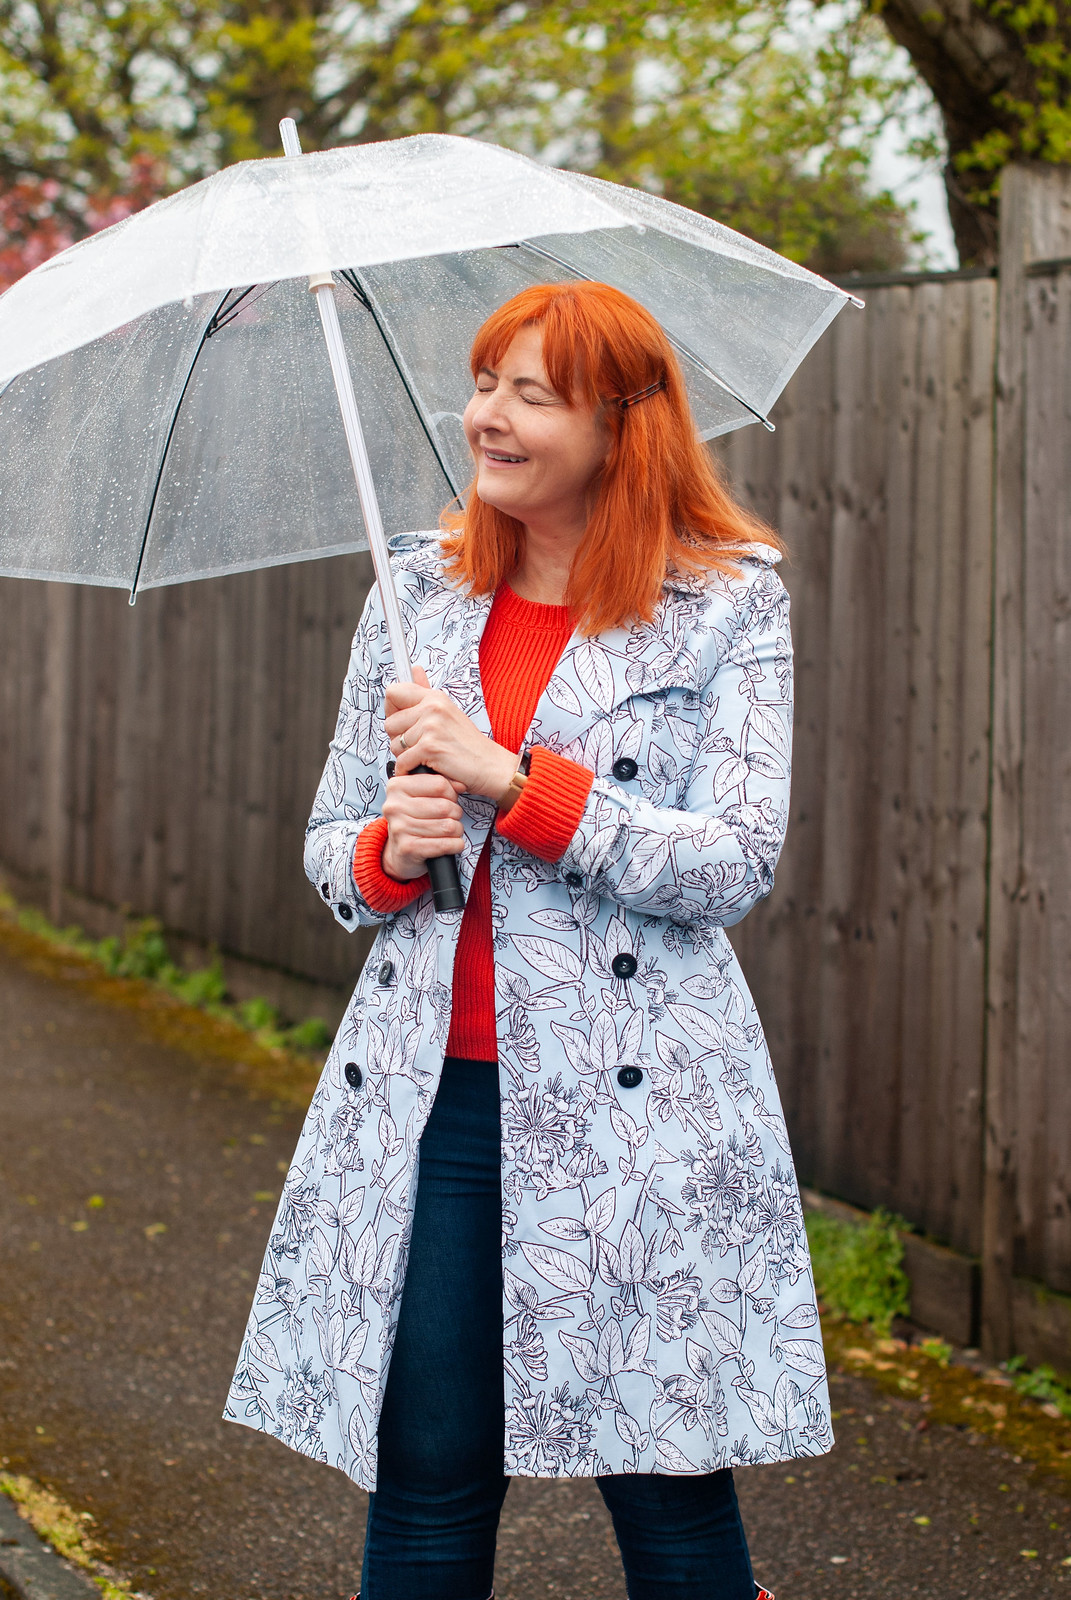 Not Dressed As Lamb Fashion Blogger Bloopers & Outtakes 2019 | The one where I realised dynamic rainy day shots weren't going to work